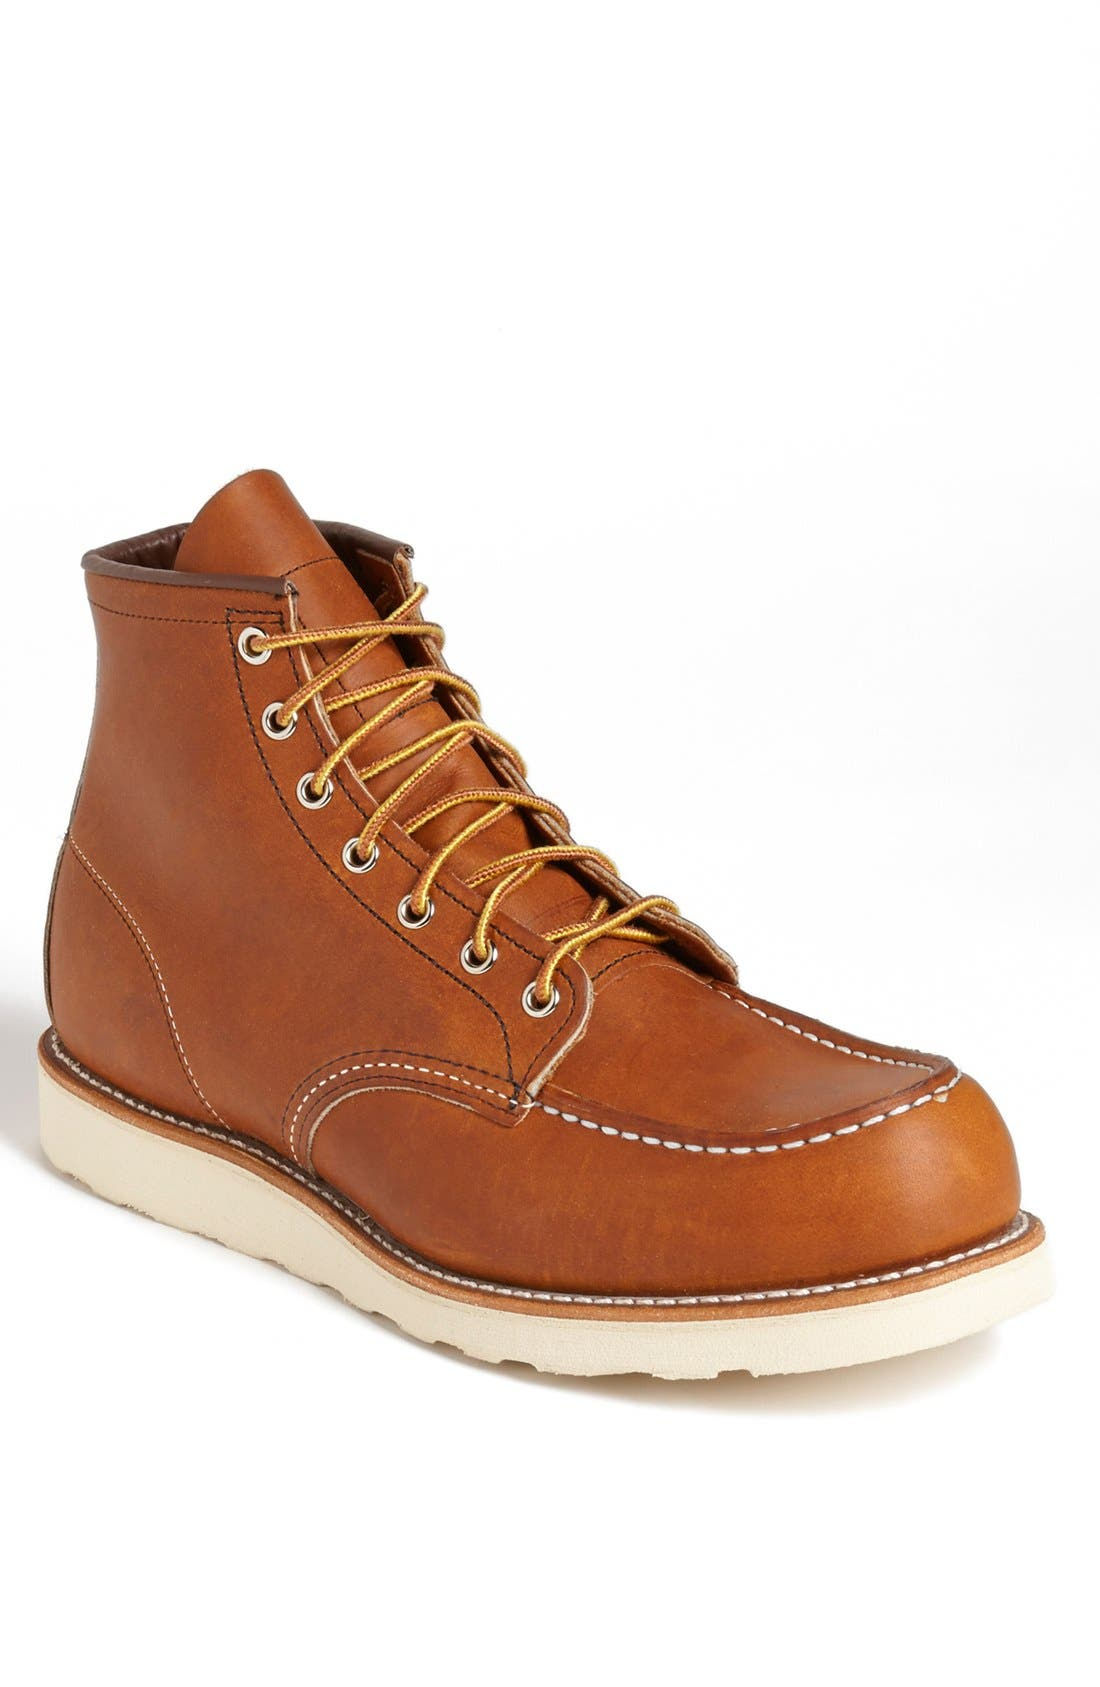 RED WING 875 6 Inch Moc Toe Boot